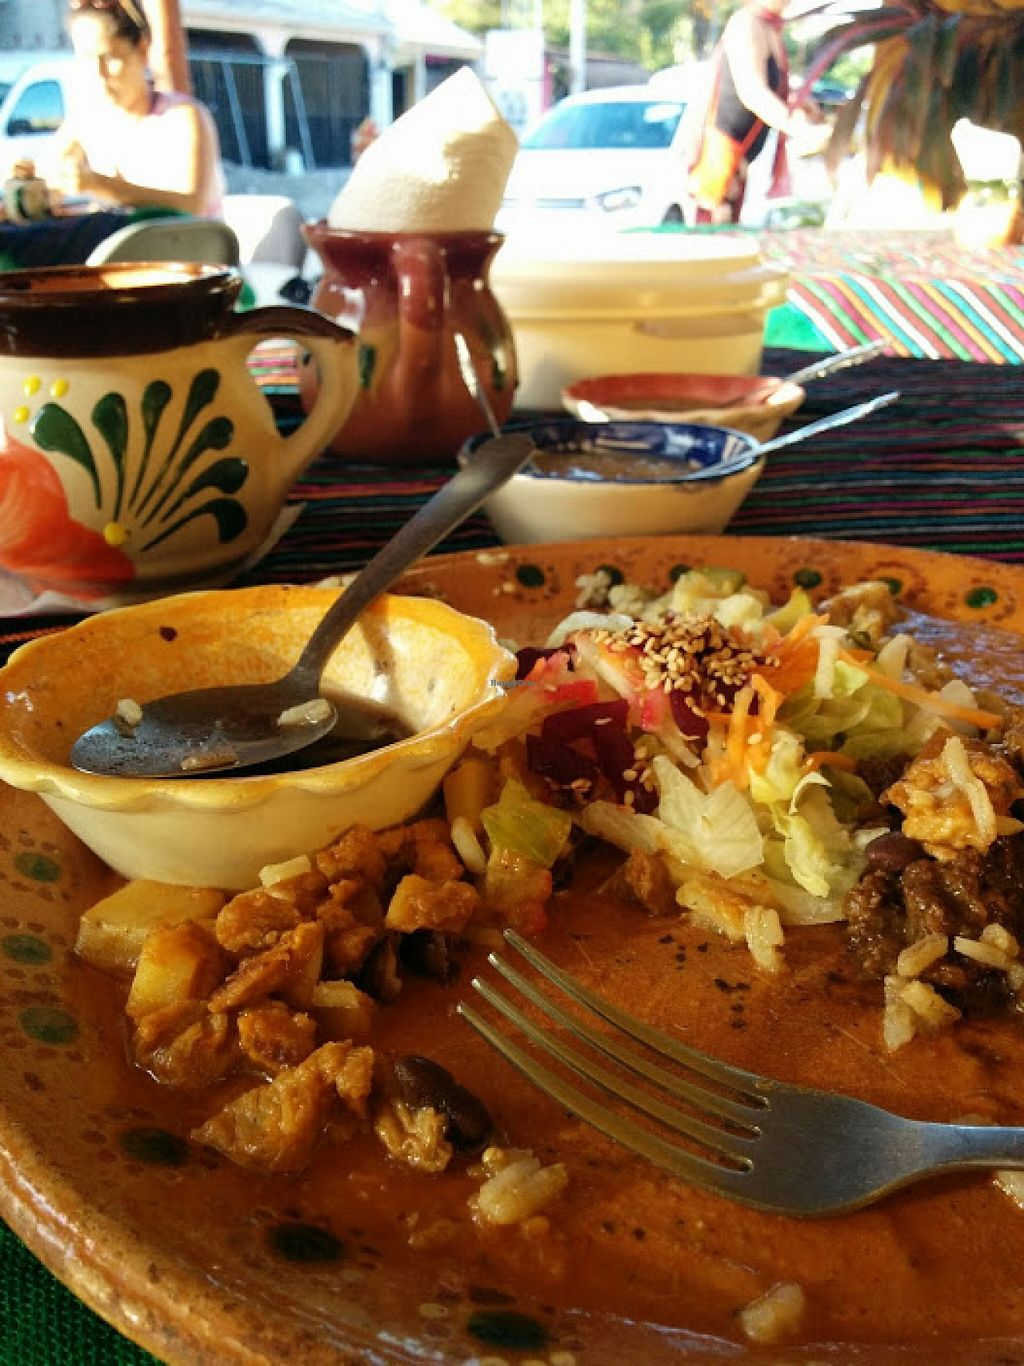 """Photo of Puerto Vegan, Siempre Sano  by <a href=""""/members/profile/hclark"""">hclark</a> <br/>Forgot to take a picture until I was part way through my meal, it was so good!  <br/> February 7, 2016  - <a href='/contact/abuse/image/30394/135392'>Report</a>"""